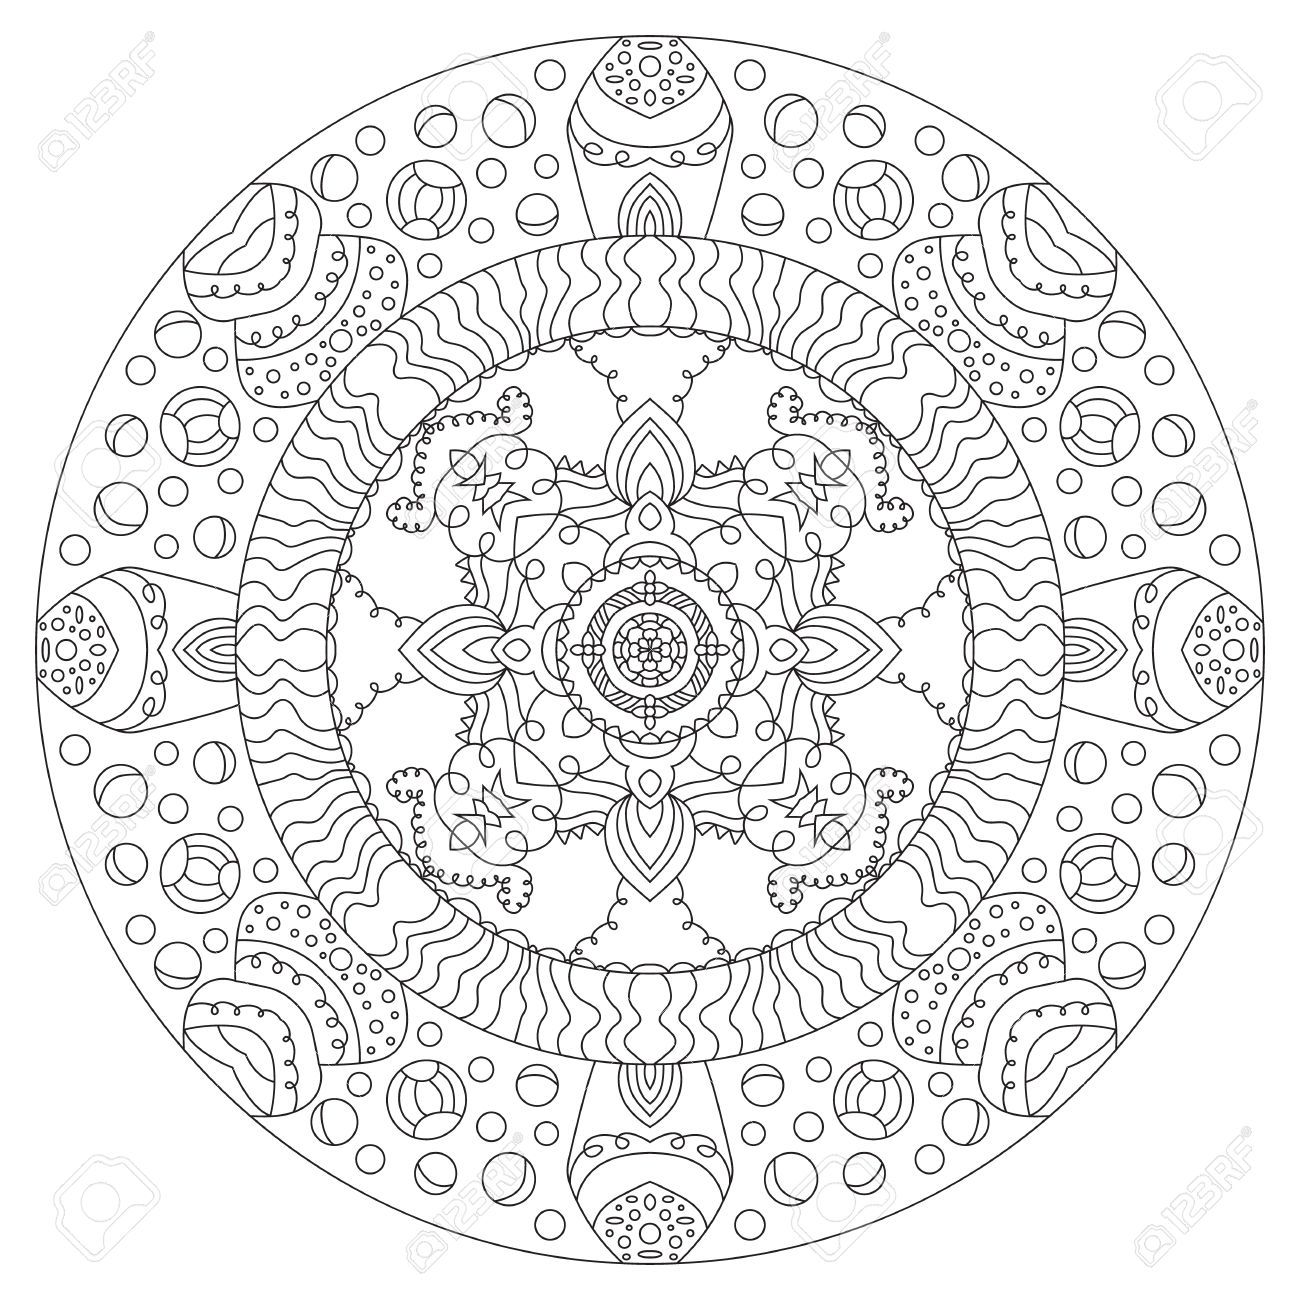 Pin by gena andreano on coloring mandala s pinterest